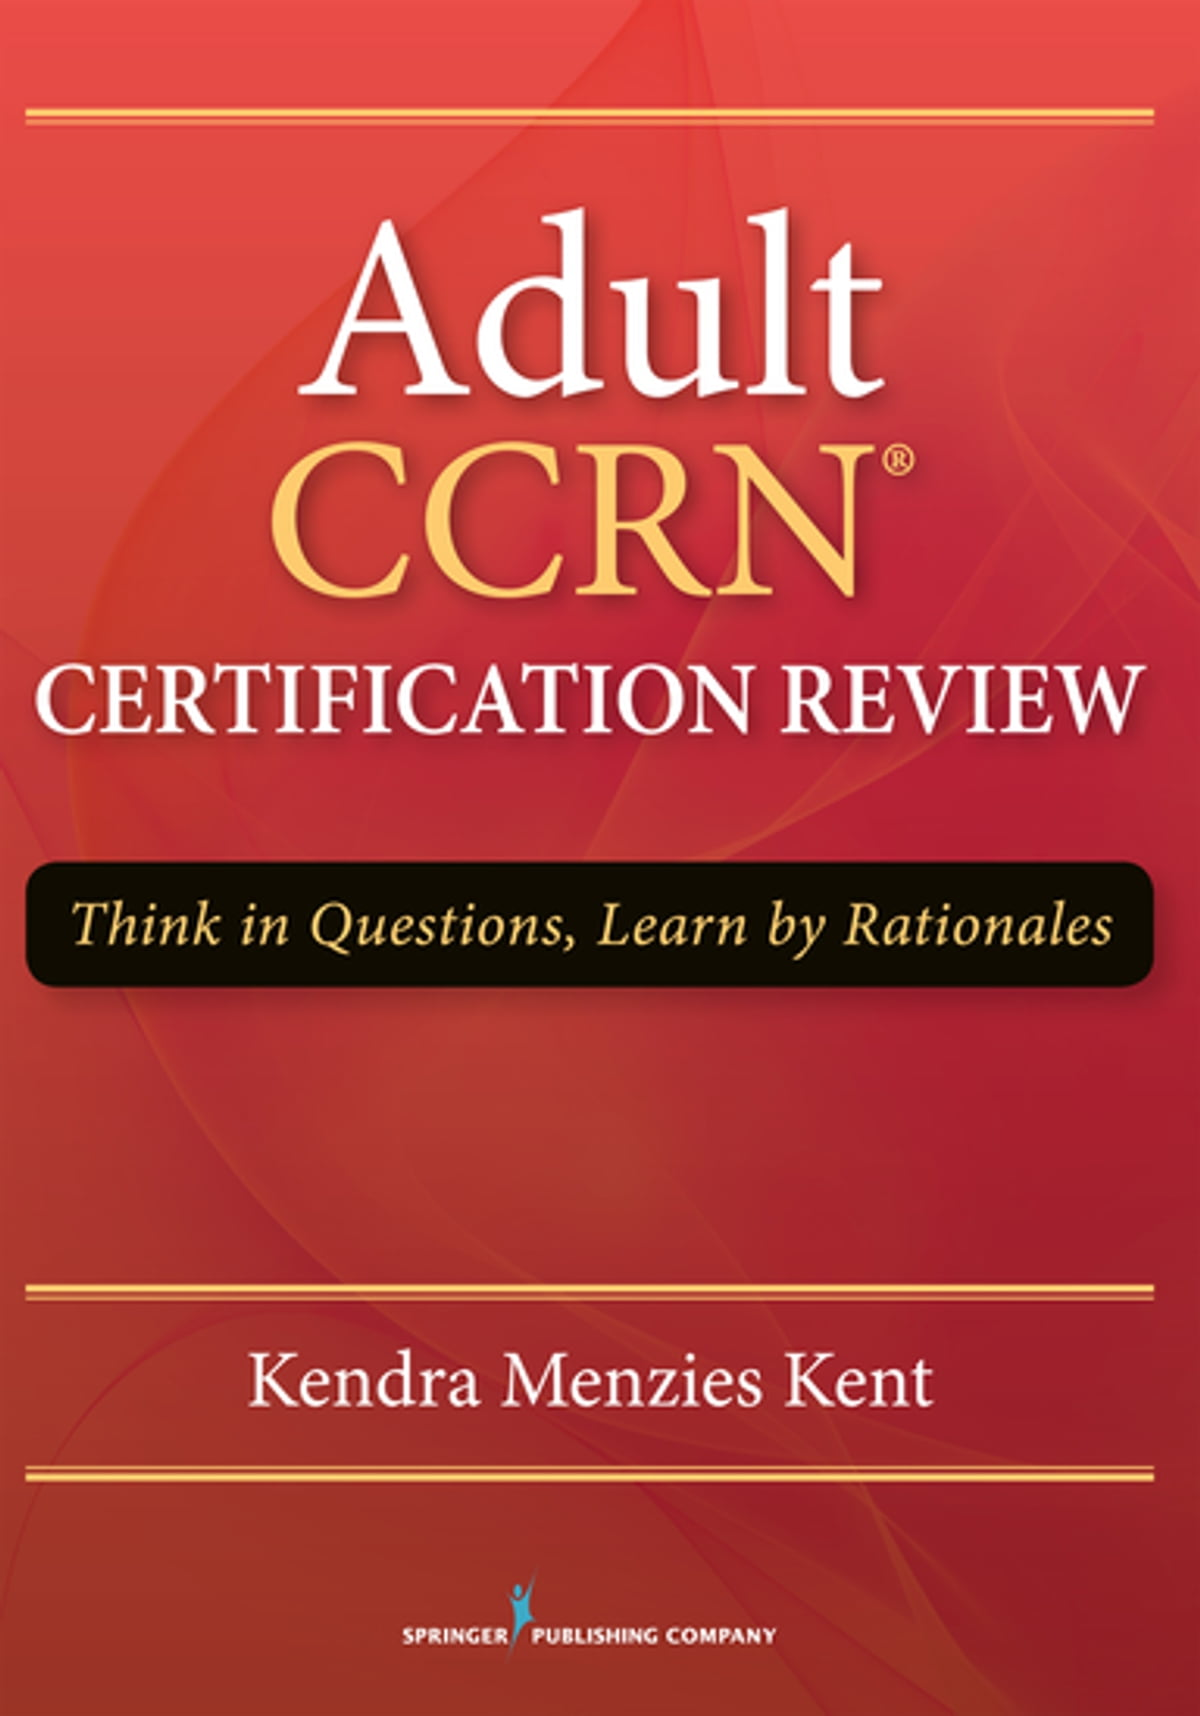 Adult Ccrn Certification Review Ebook By Kendra Menzies Kent Ms Rn